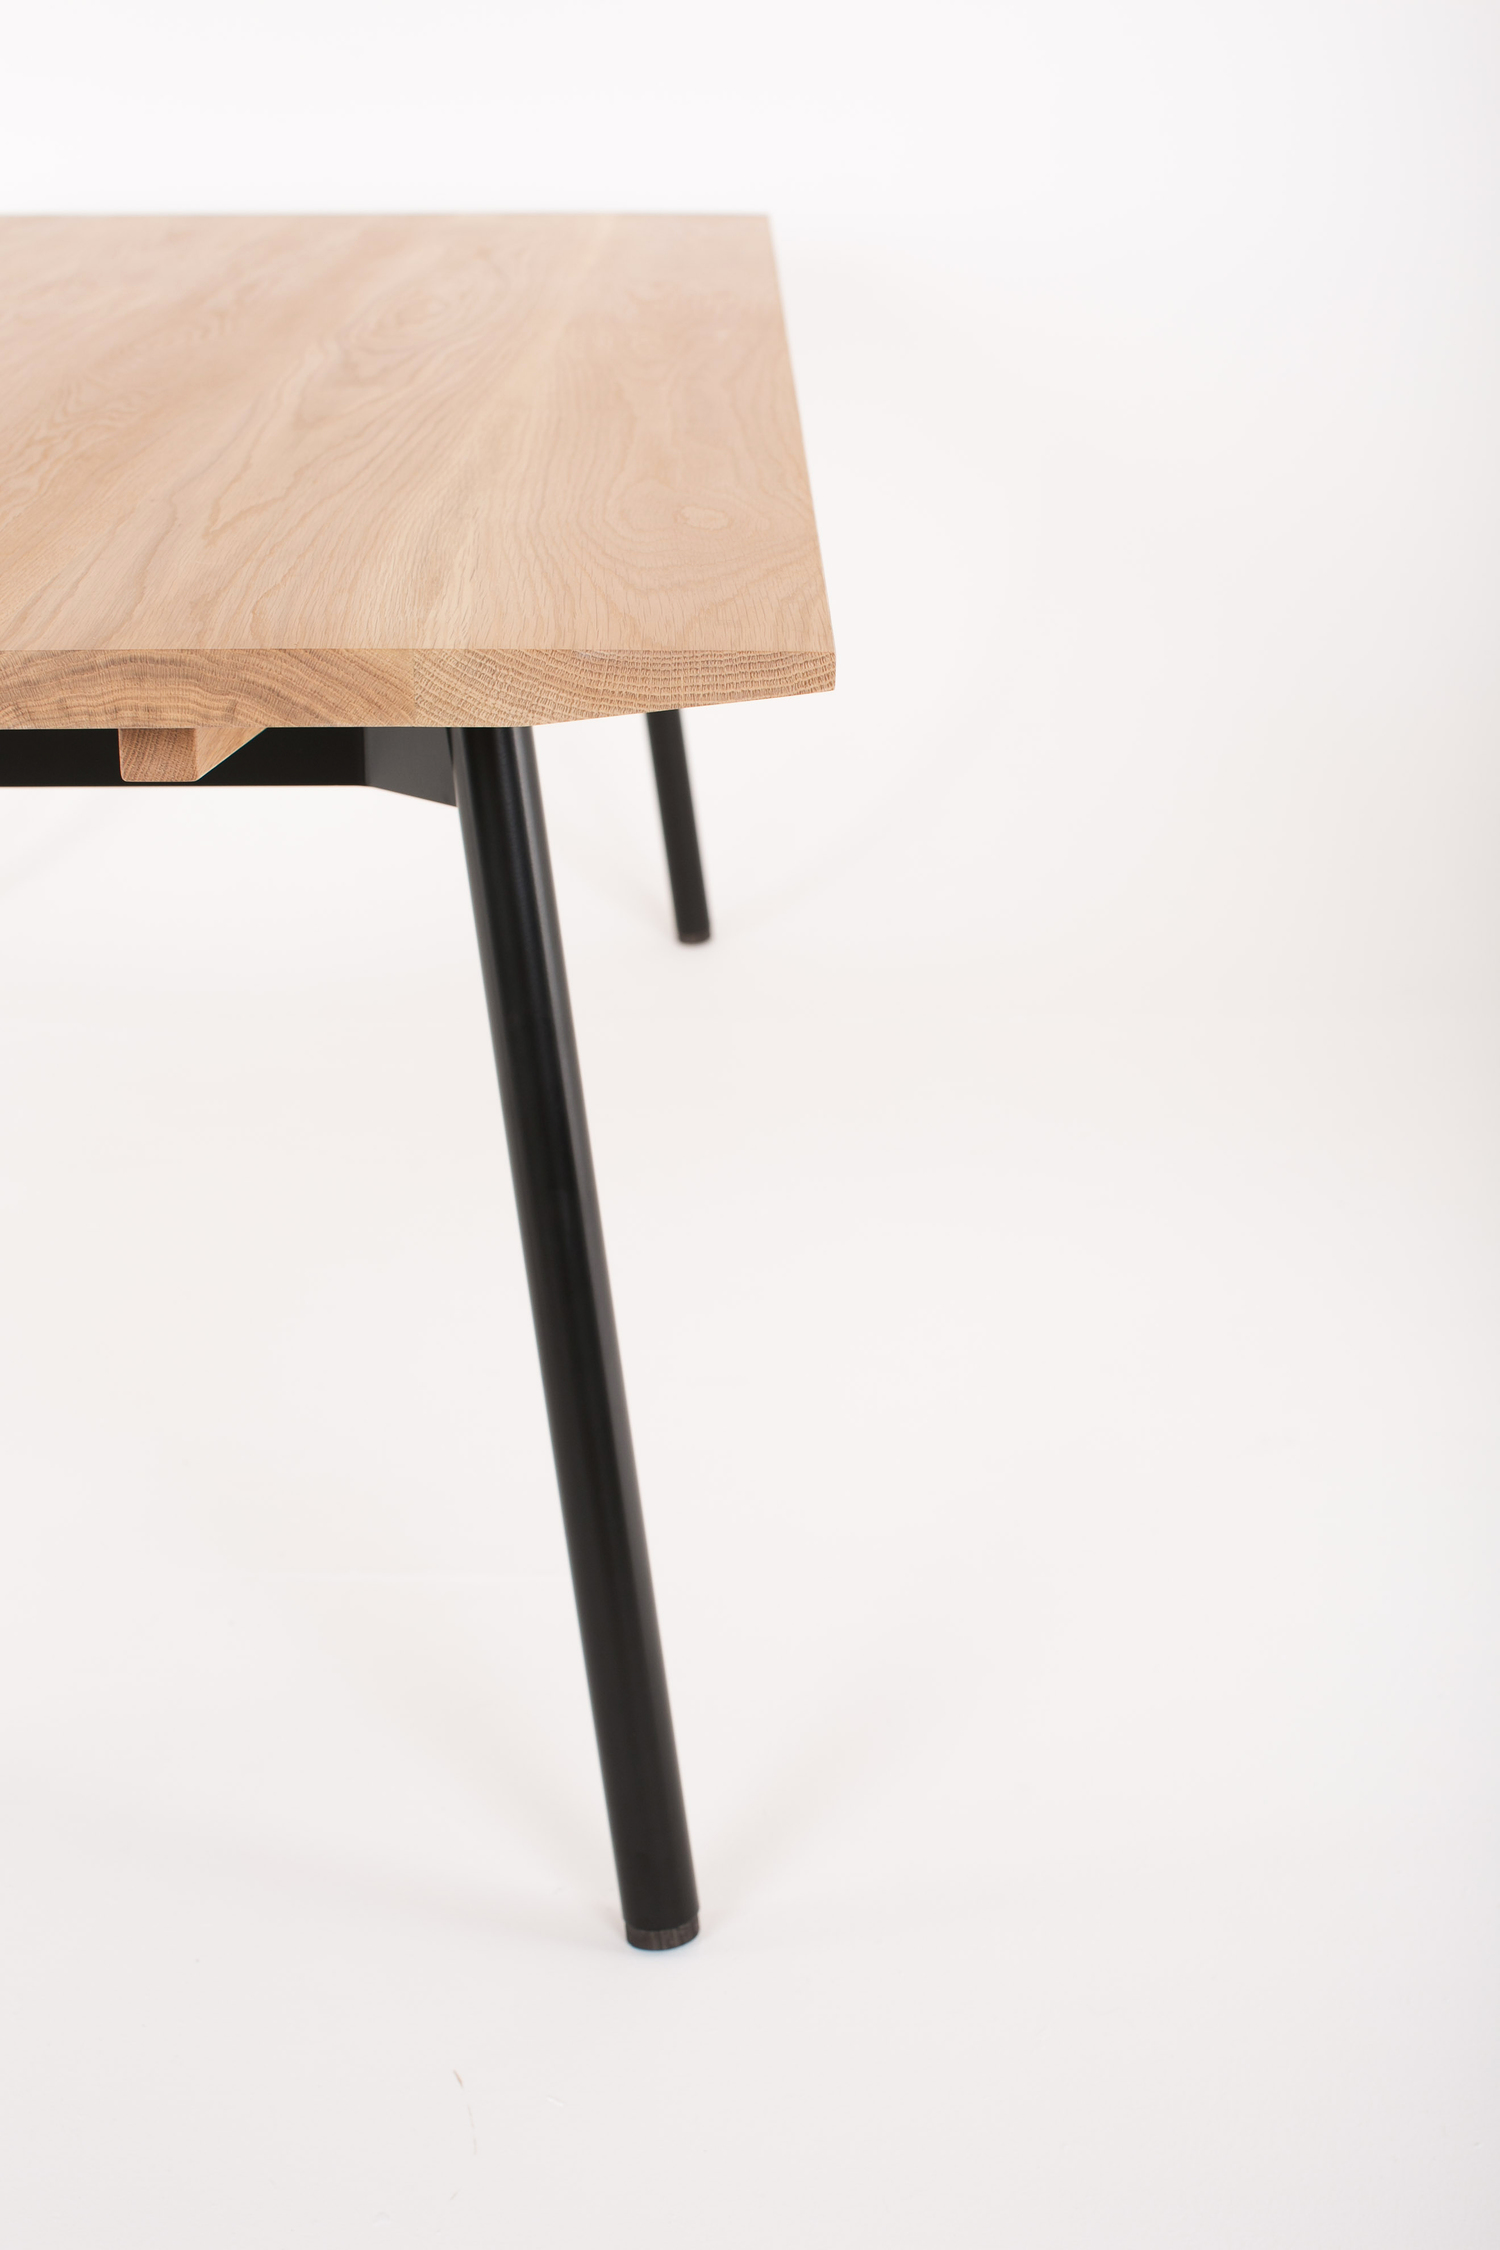 Wells Dining Table by Mast Furniture. Modern, handmade furniture.